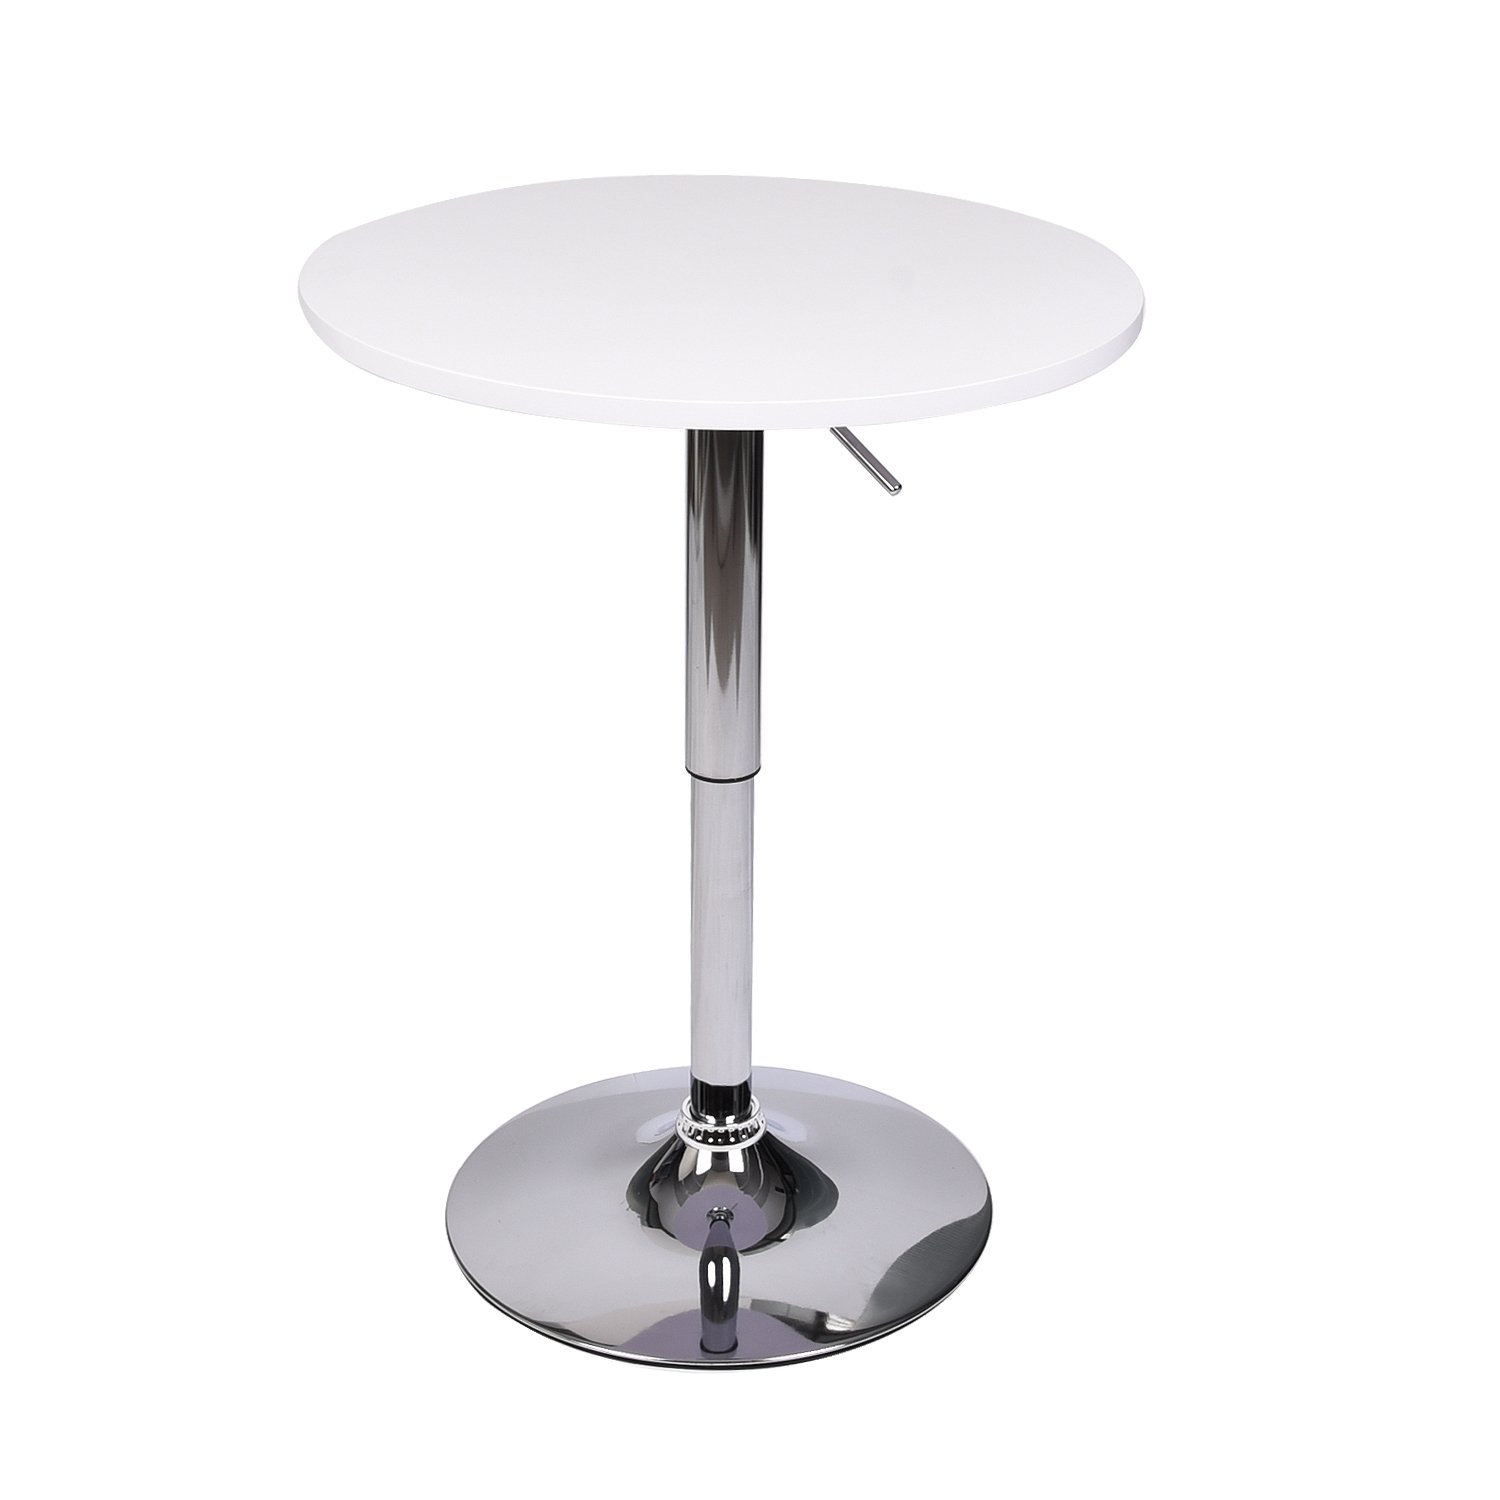 Adjustable Bar Table –Swivel Round Pub Table MDF Top with Black Back Base for Home Kitchen Bistro (White)